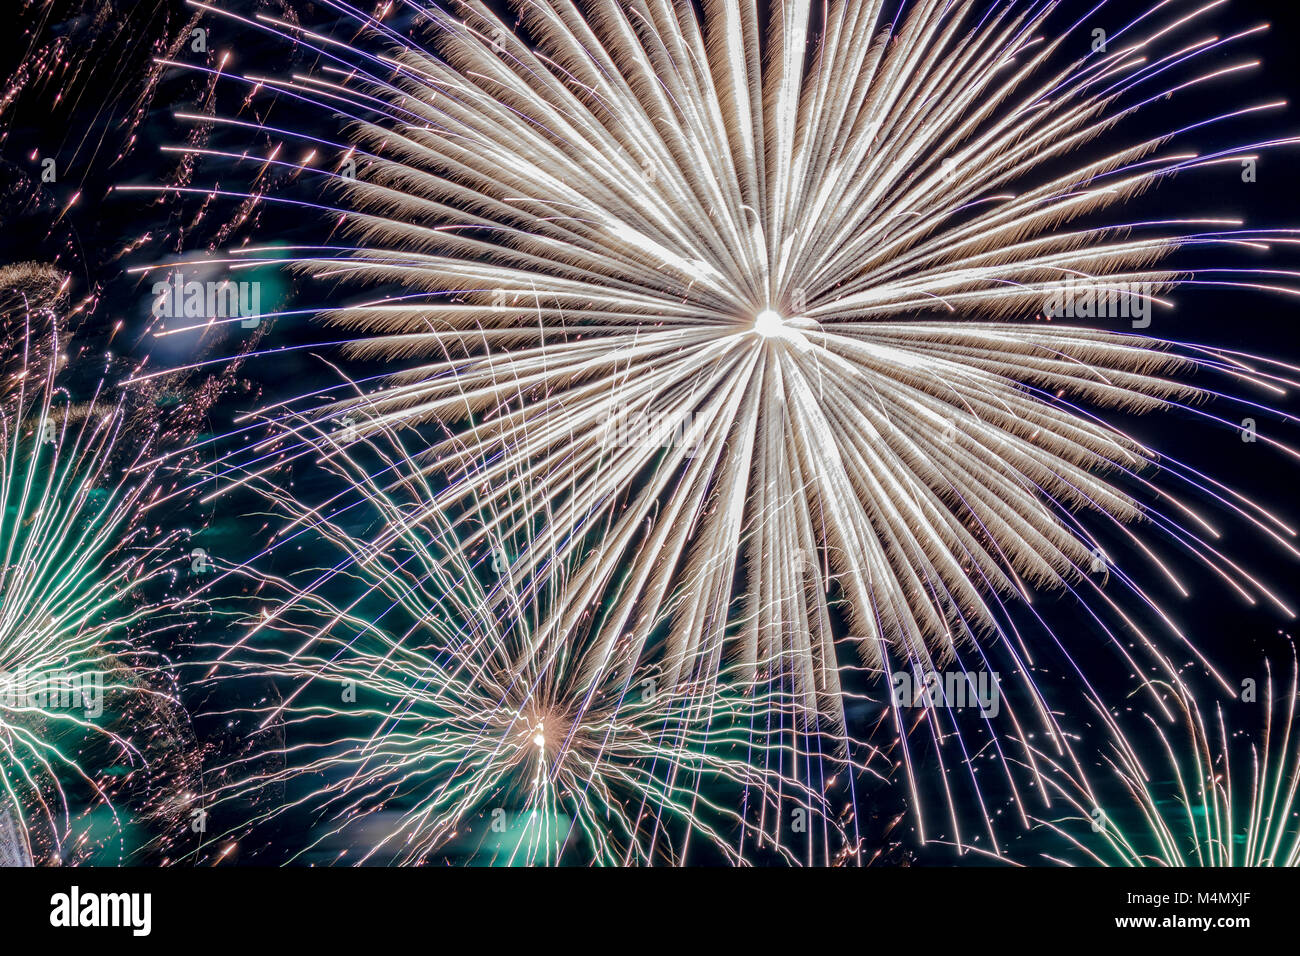 White and Blue Fireworks Bursts - Stock Image